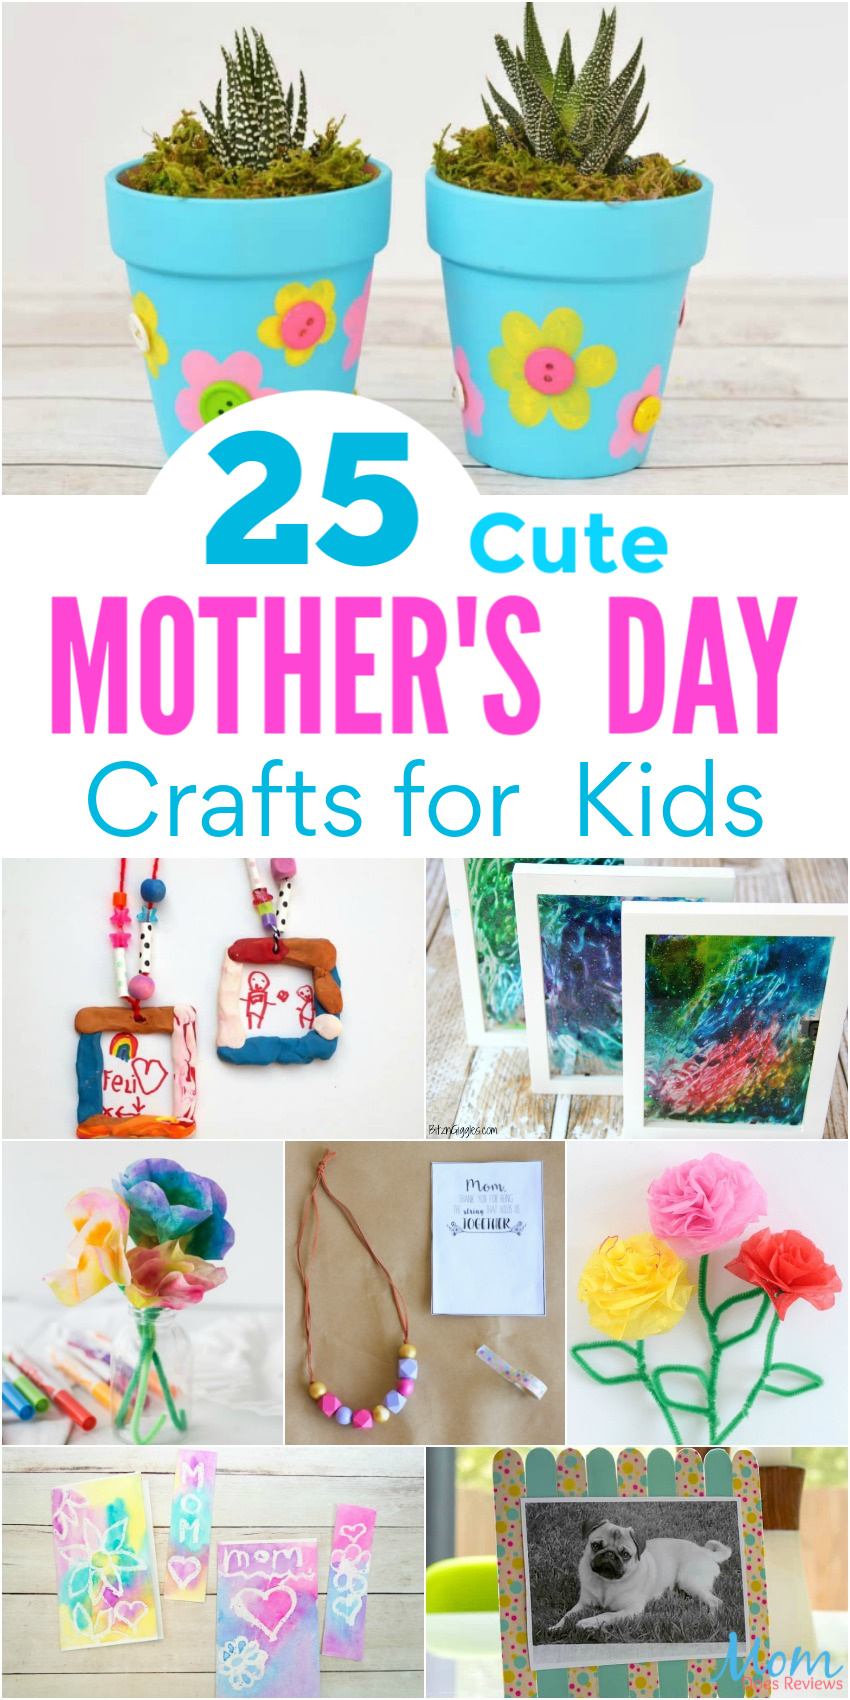 25 Cute Mother's Day Crafts for Kids to Make for Mom #crafts #mothersday #DIY